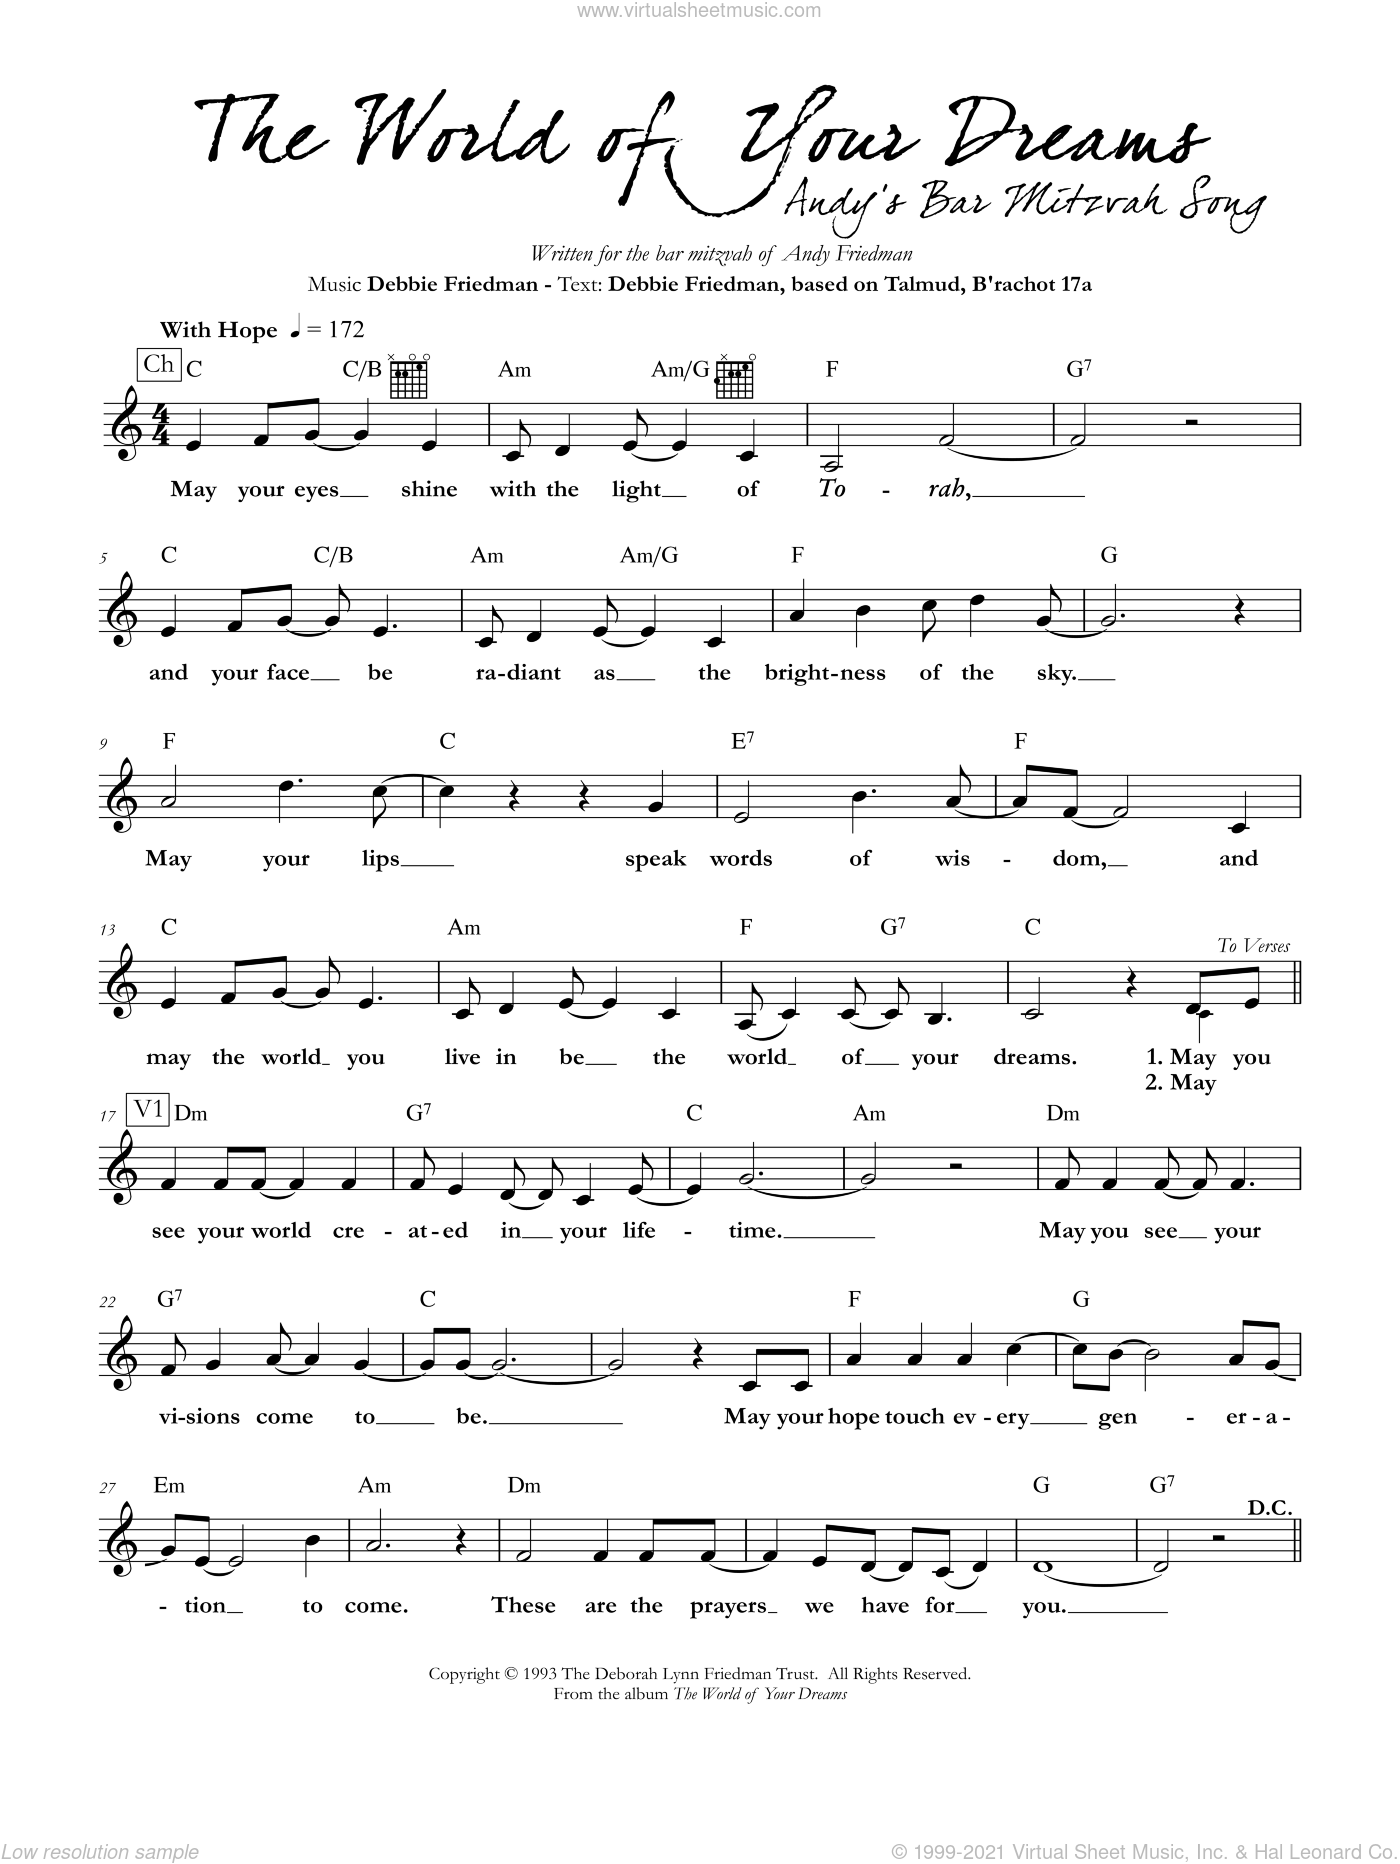 The World of Your Dreams sheet music for voice and other instruments (fake book) by Debbie Friedman, intermediate skill level